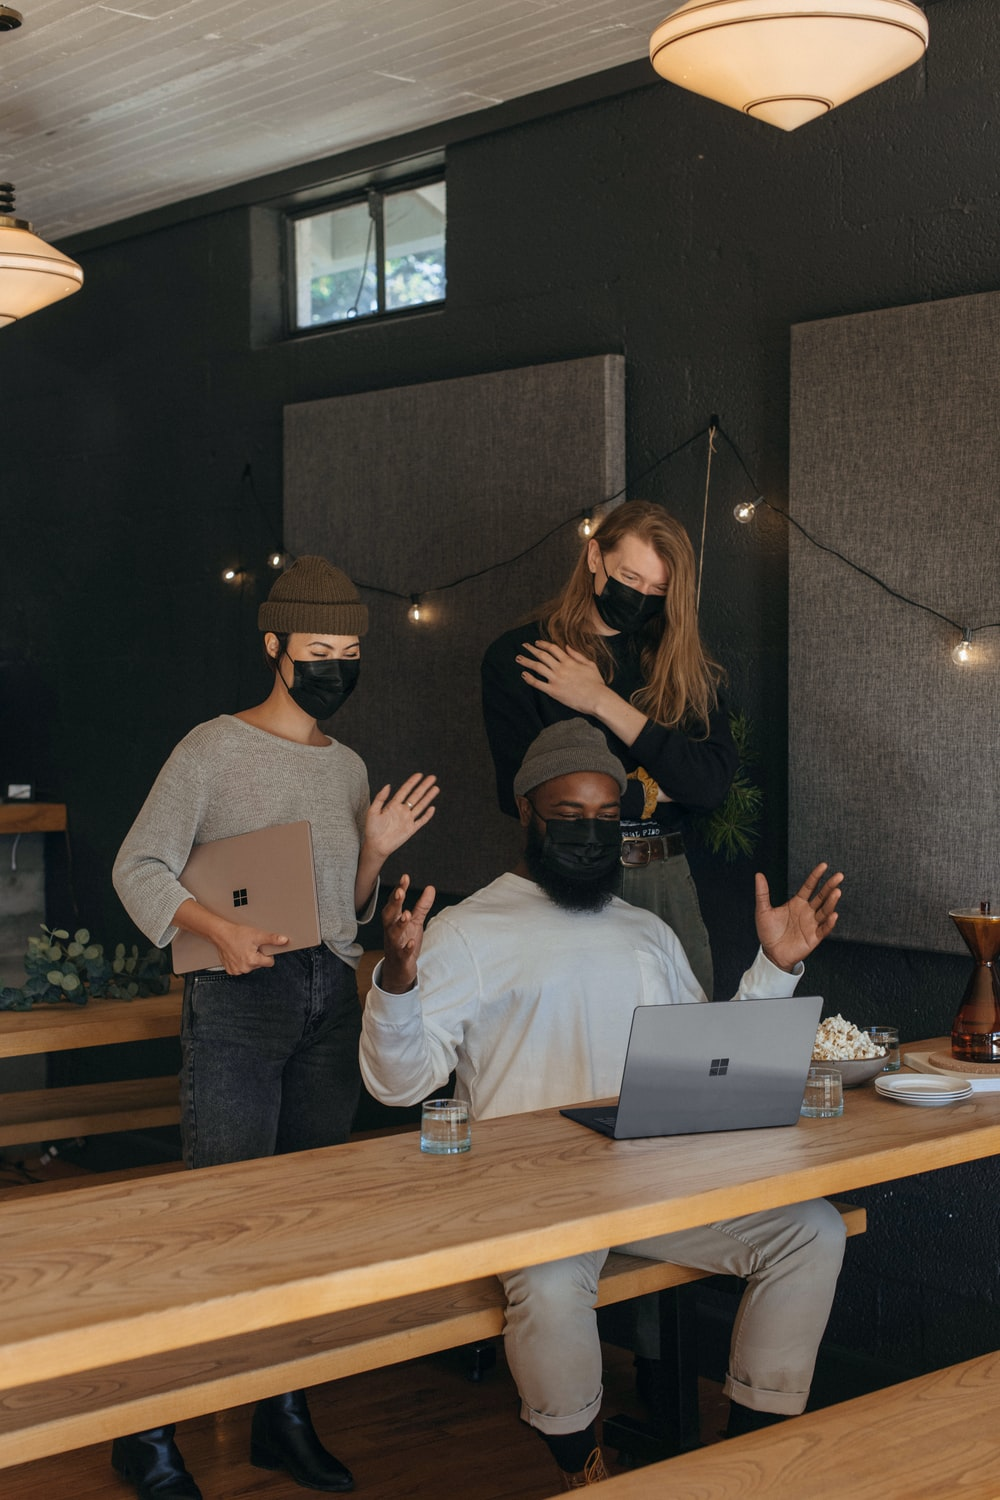 Three coworkers wearing masks talking with someone on video chat in an office